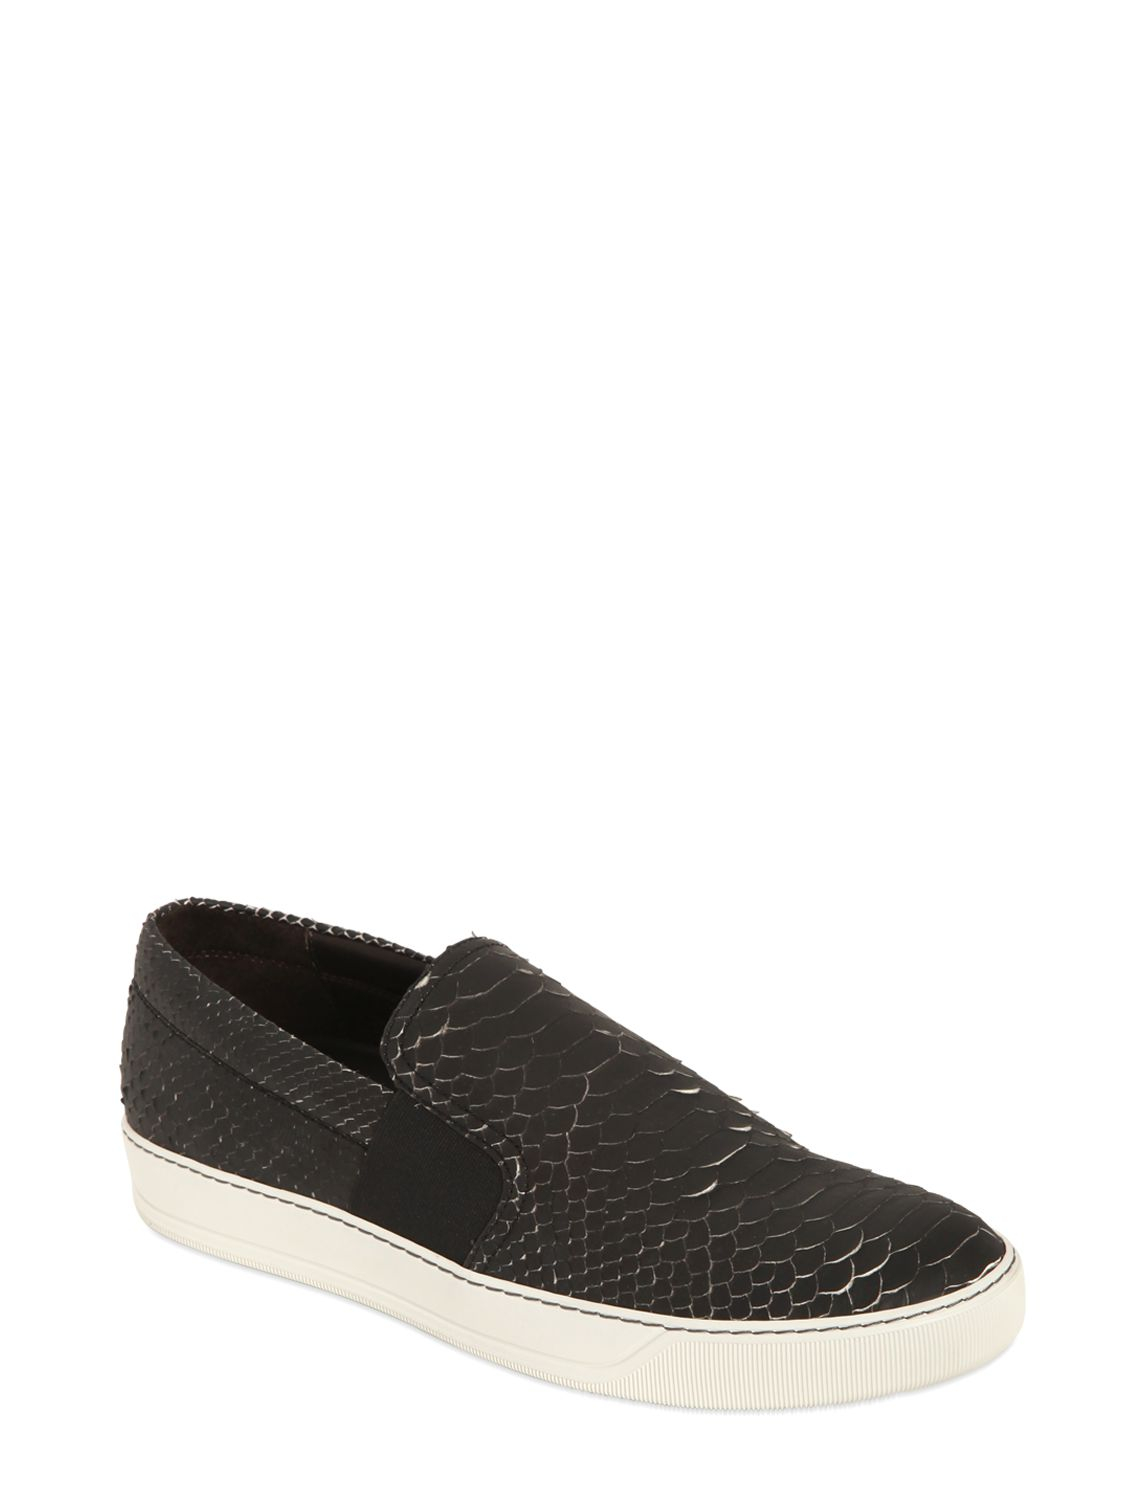 Lanvin Embossed Leather Slip-On Sneakers outlet newest clearance tumblr sale enjoy discount cheap buy cheap newest Ug0MsZm4Gj